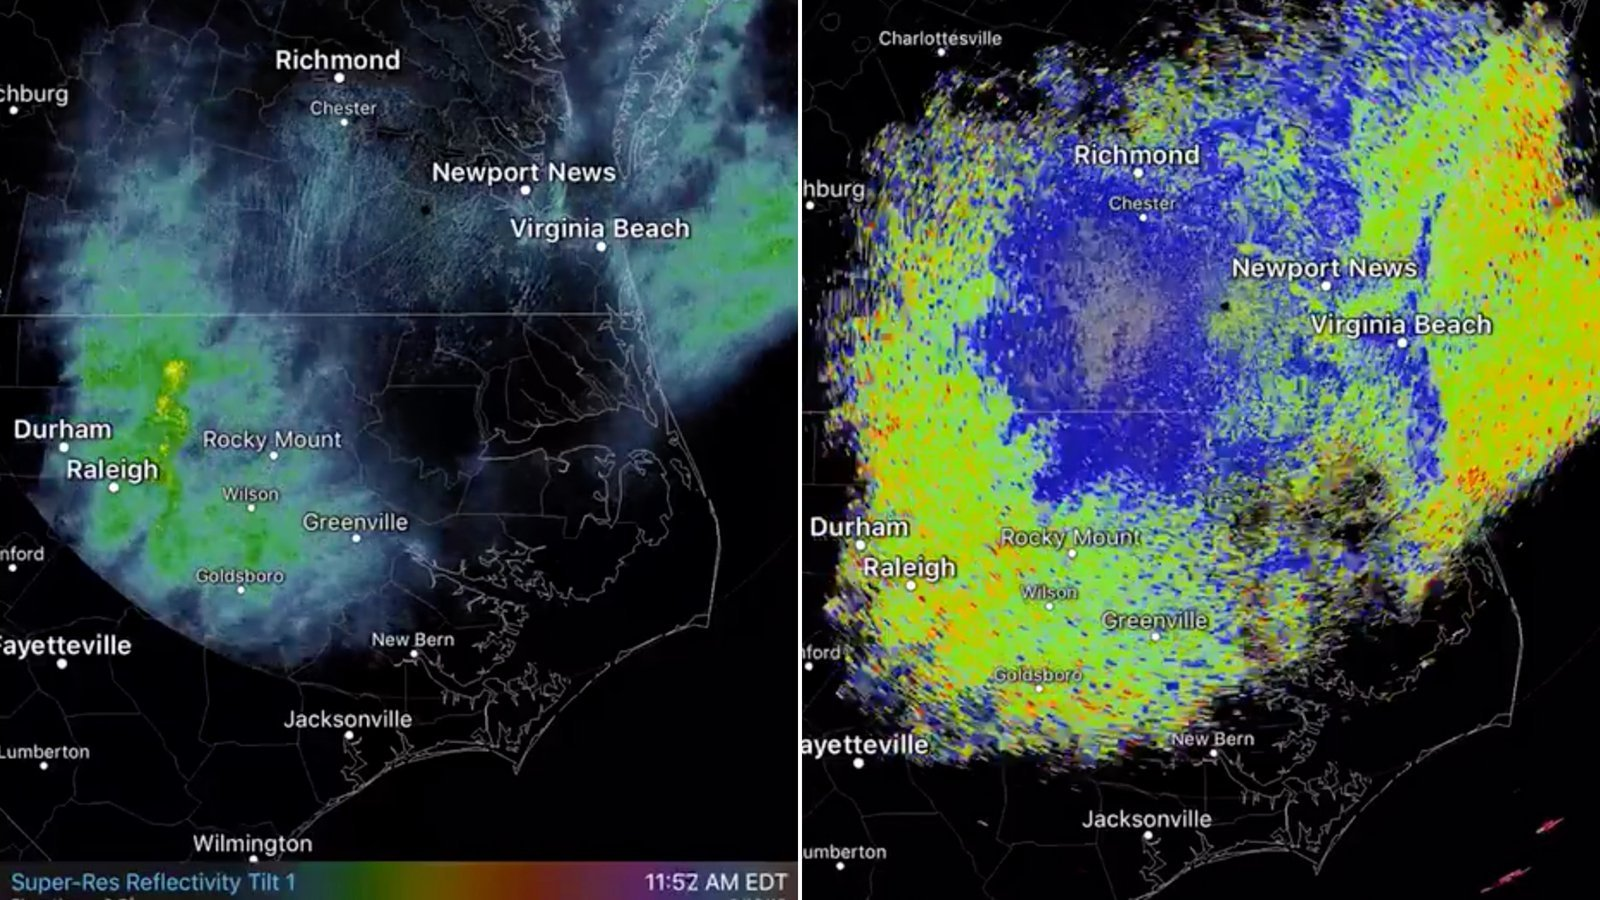 There are so many dragonflies that they're showing up on weather radar